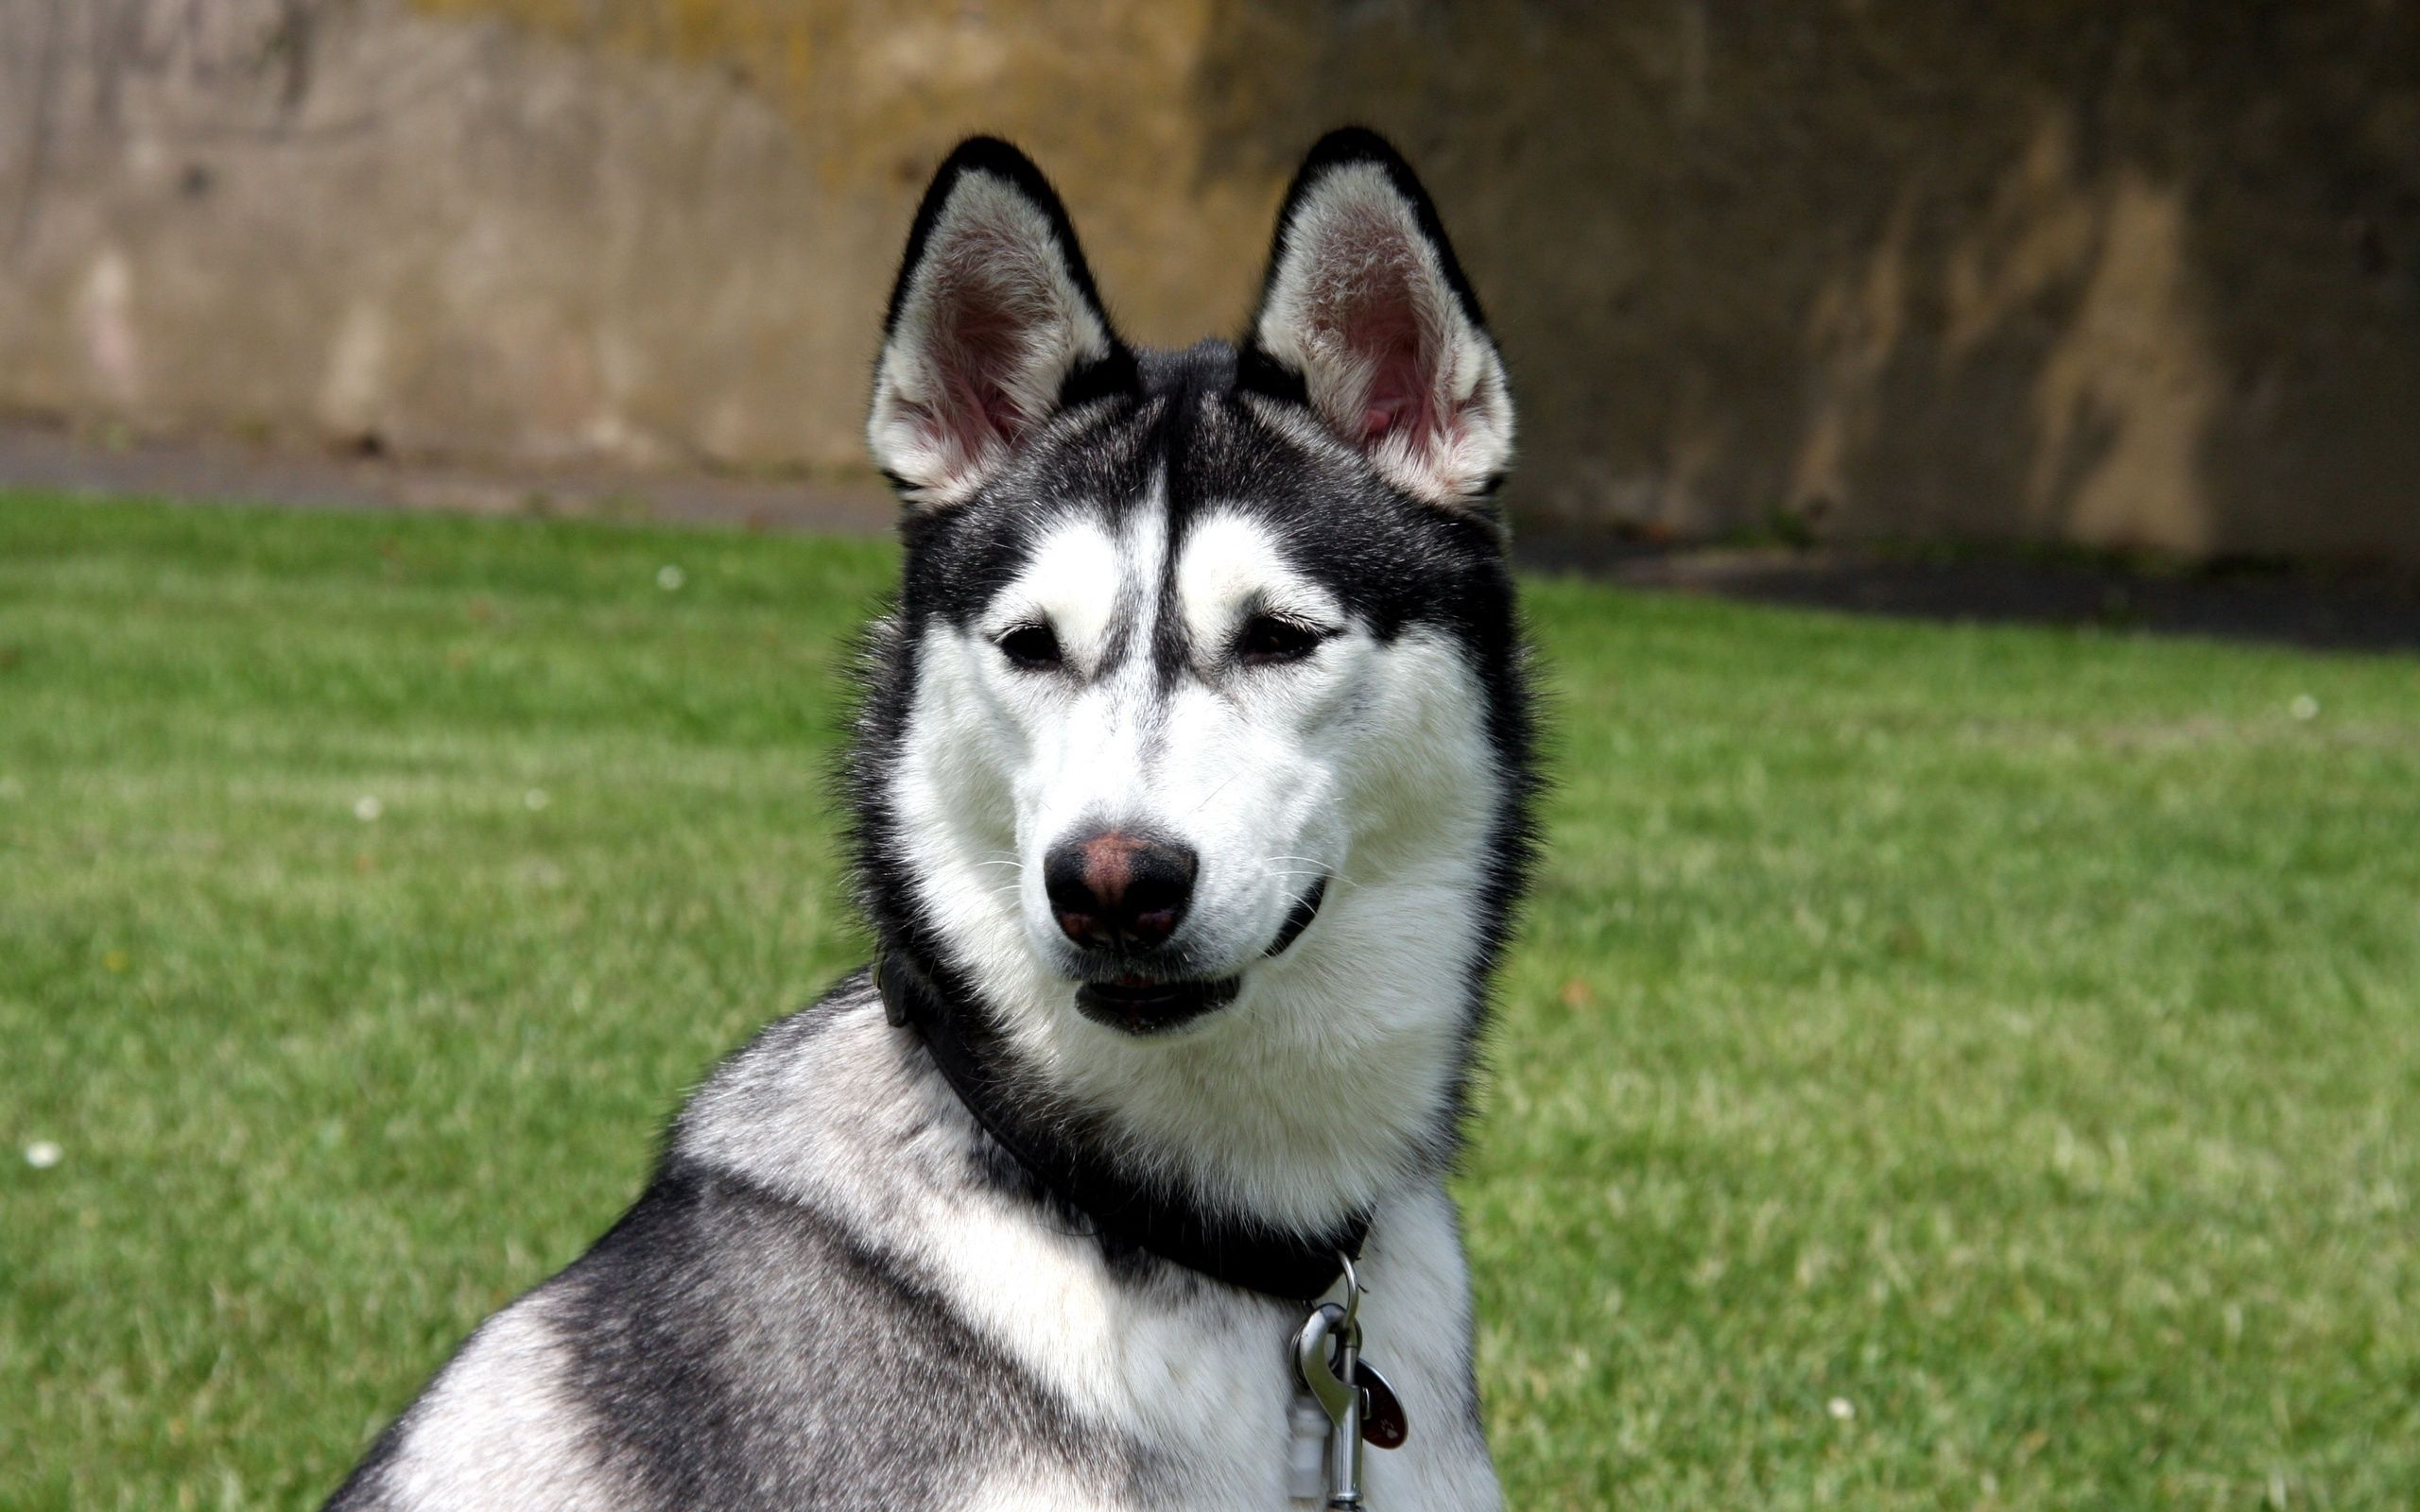 131581 download wallpaper Animals, Husky, Haska, Muzzle, Dog, Sight, Opinion screensavers and pictures for free